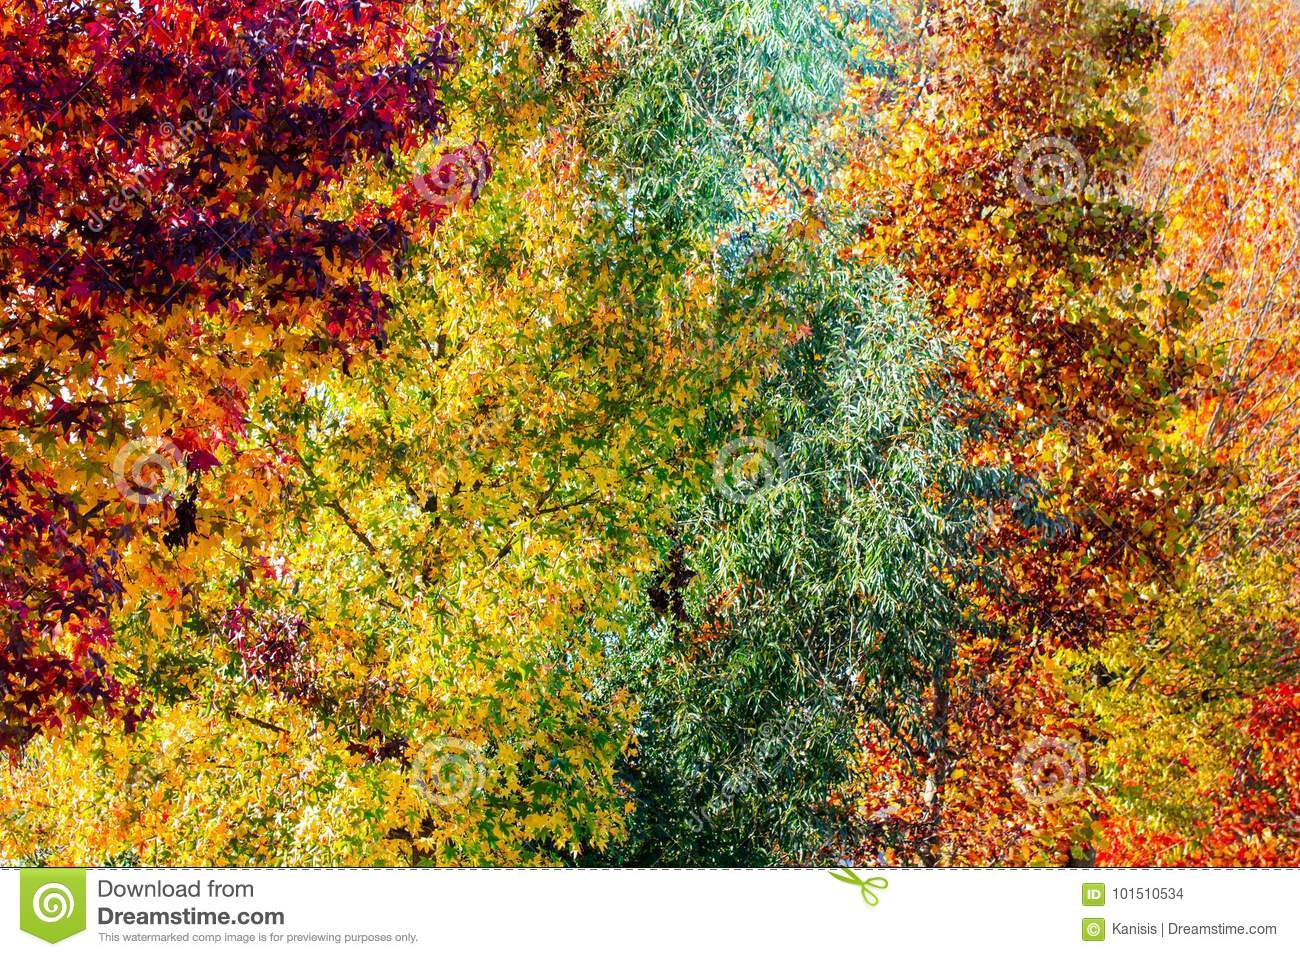 Colorful autumn tree in a different color hue diversity concept